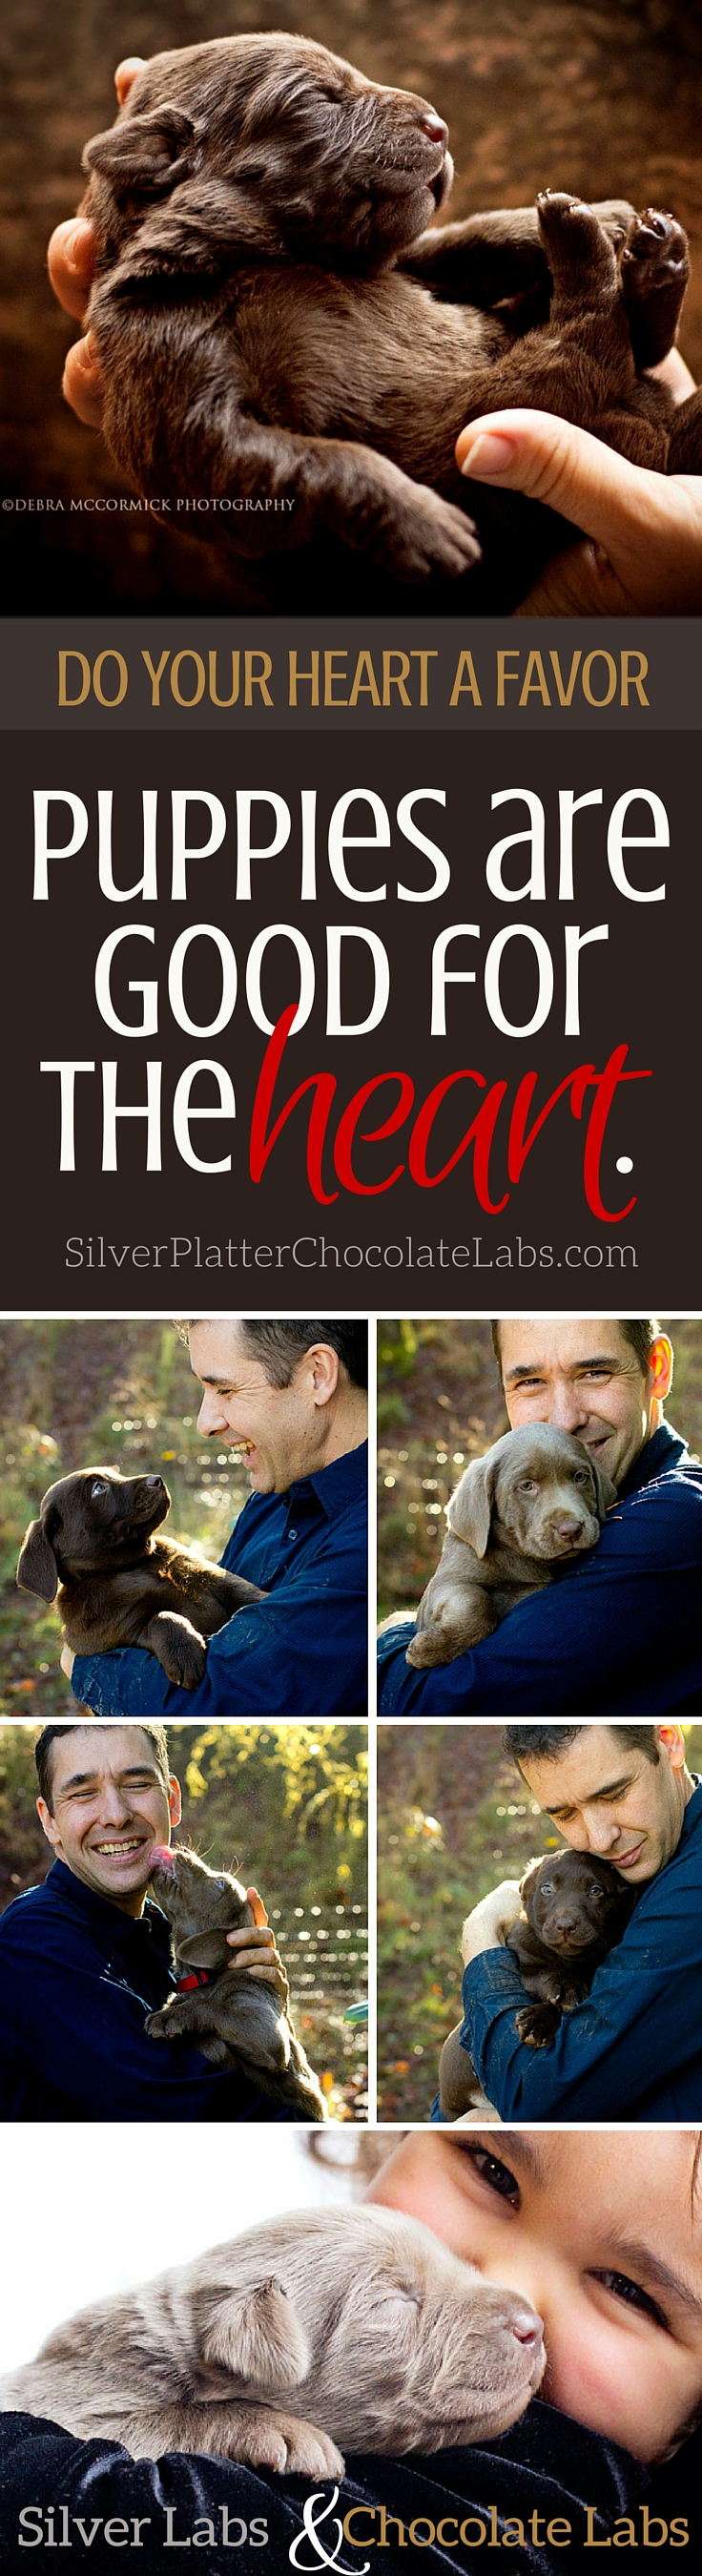 Silver Lab Puppies Oregon : silver, puppies, oregon, Puppies, Heart!, Silver, Chocolate, Labrador, Puppies., SilverPlatterChocolateL…, Puppies,, Puppy, Chocolate,